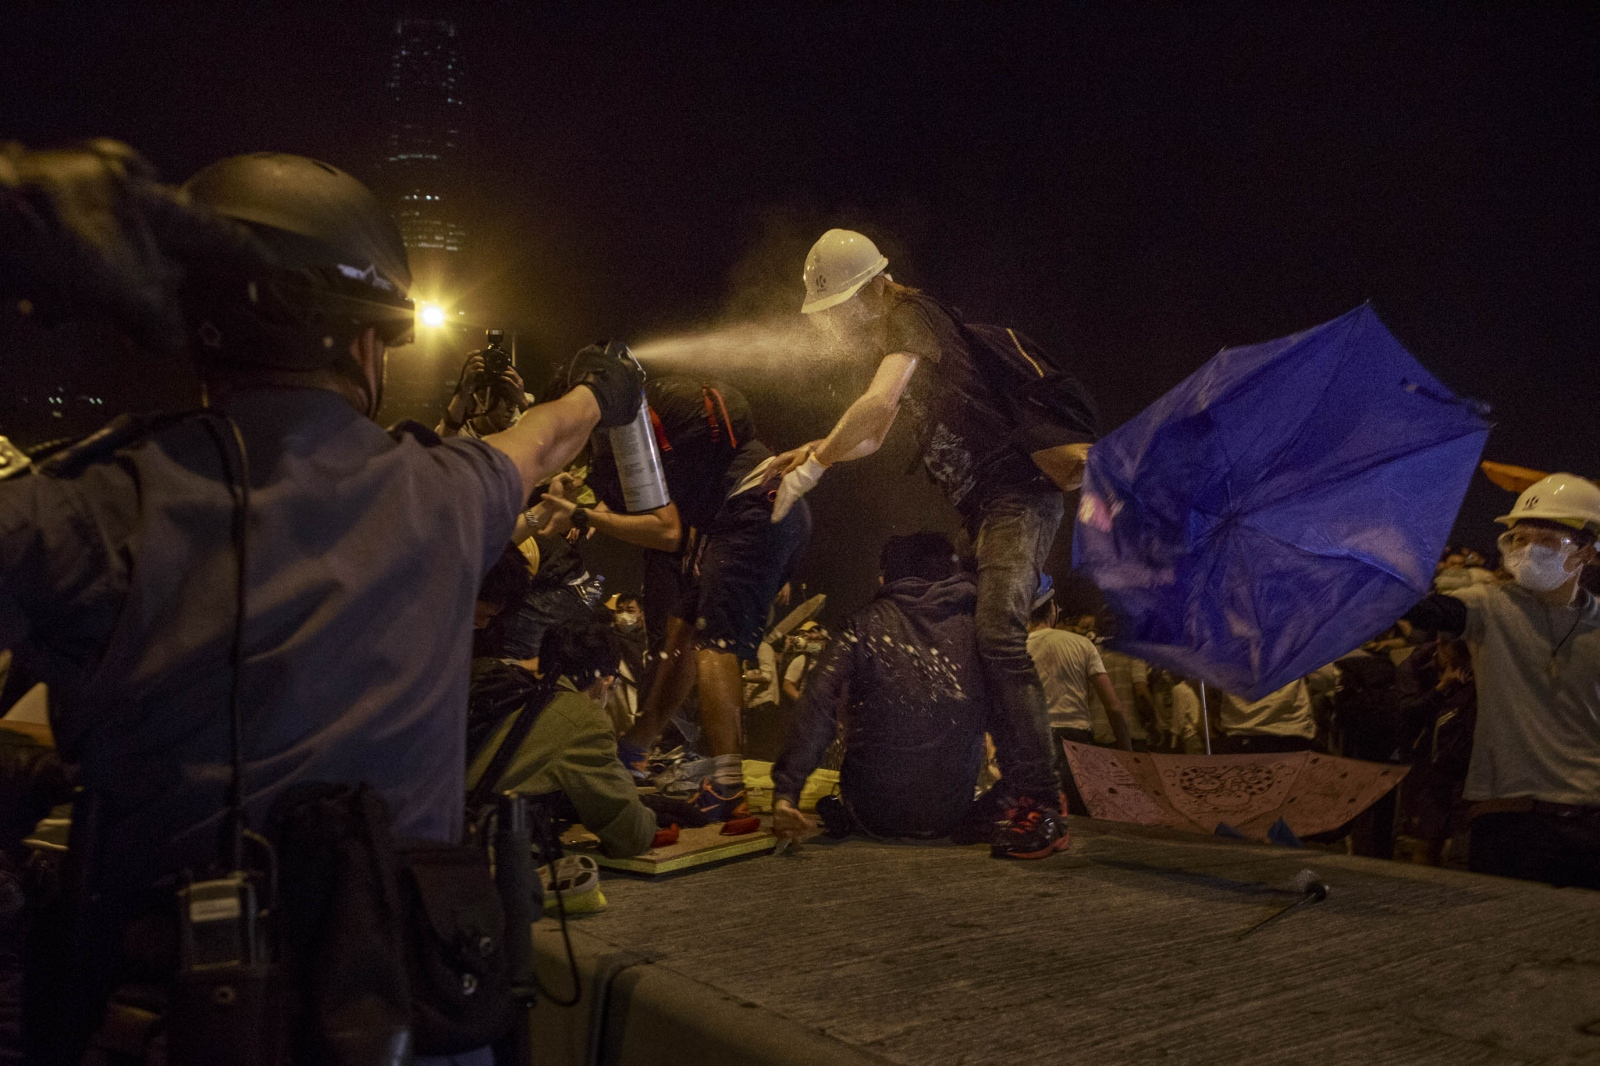 A protestor is sprayed with pepper spray during a violent night of scuffles with the police in the Admiralty district of Hong Kong, in the early hours of December 1, 2014. Protestors attempted to retake and occupy a major road that had earlier been cleared by the police weeks earlier.